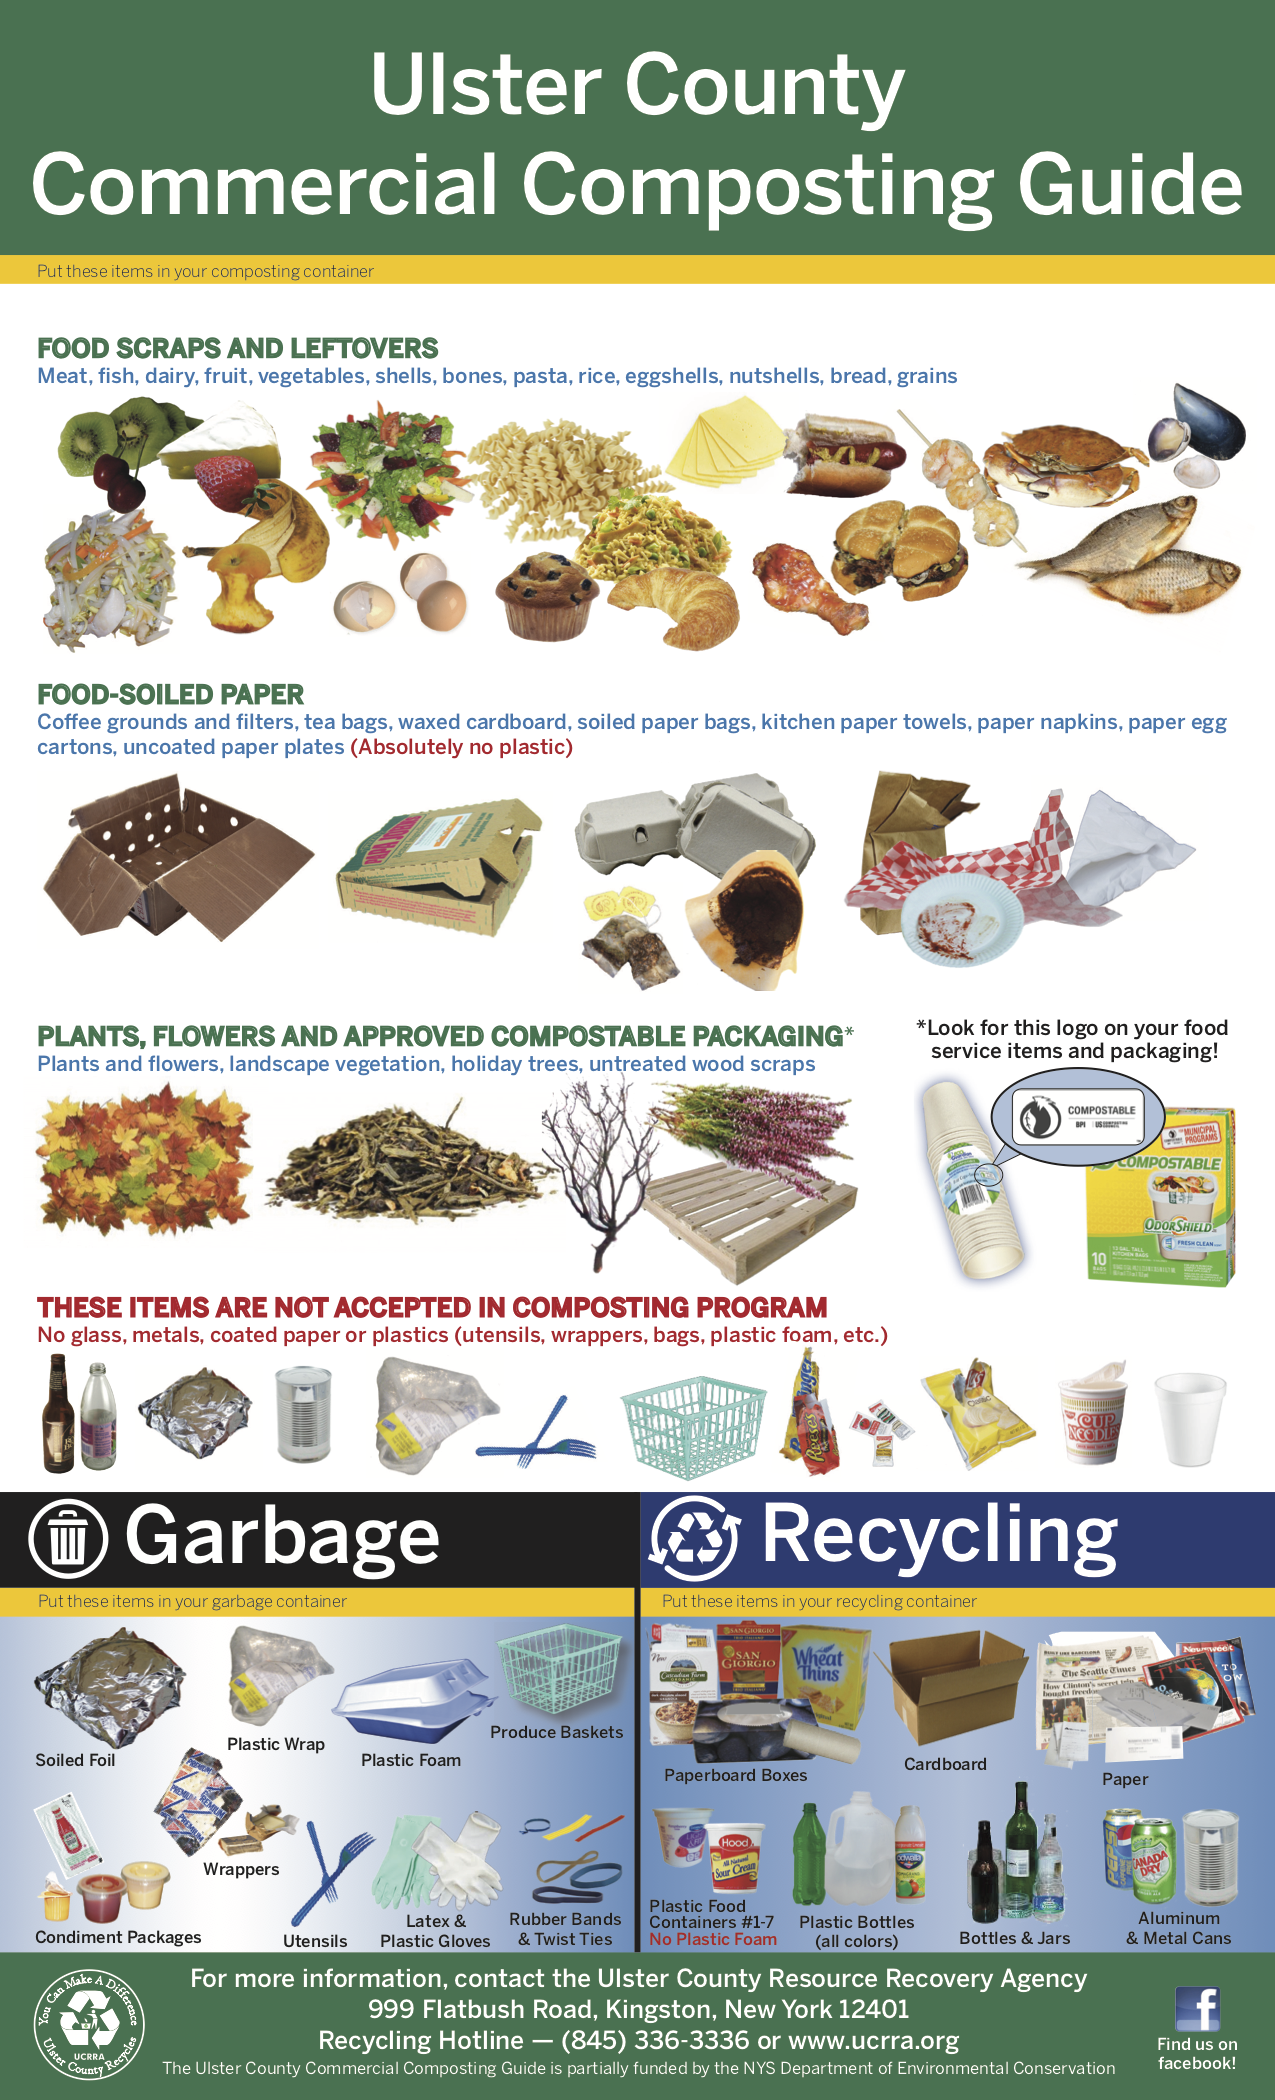 Wondering where your food scraps go? Ulster's guide is a handy visual of what is and isn't accepted. Click to enlarge image.